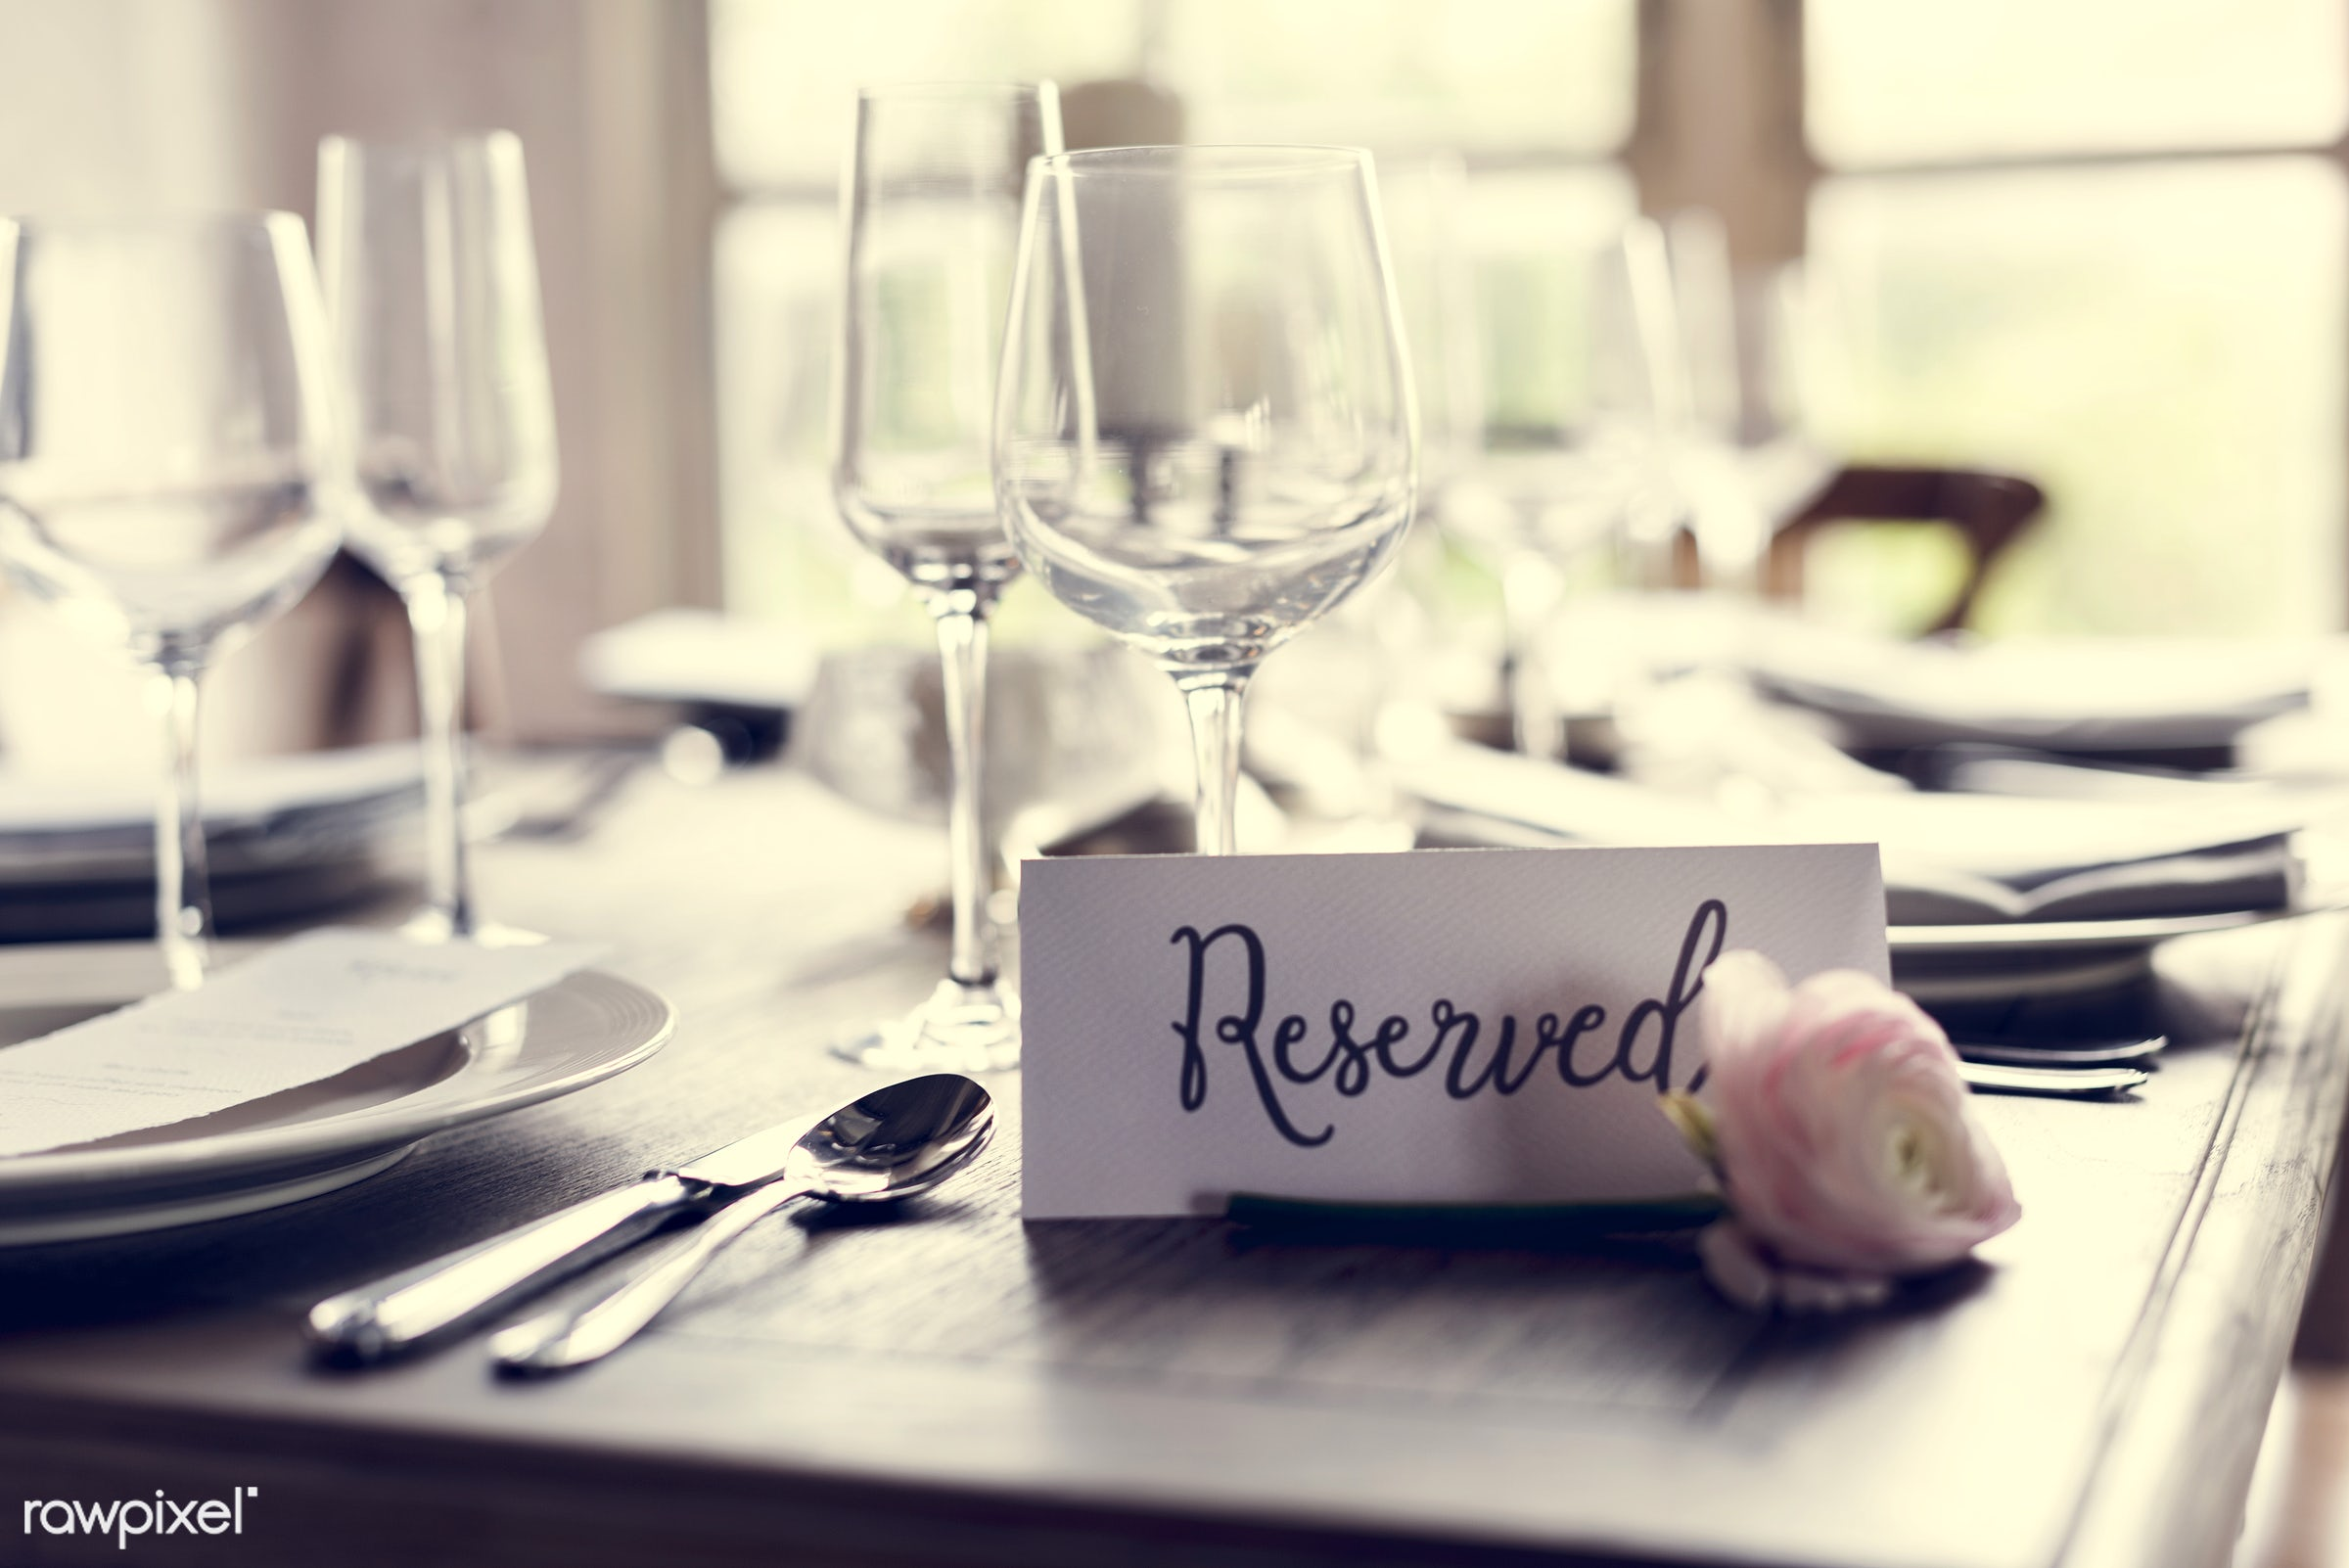 cuisine, catering, exclusive, restaurant, party, private, setting, event, fine, meal, information, announcement, preparation...